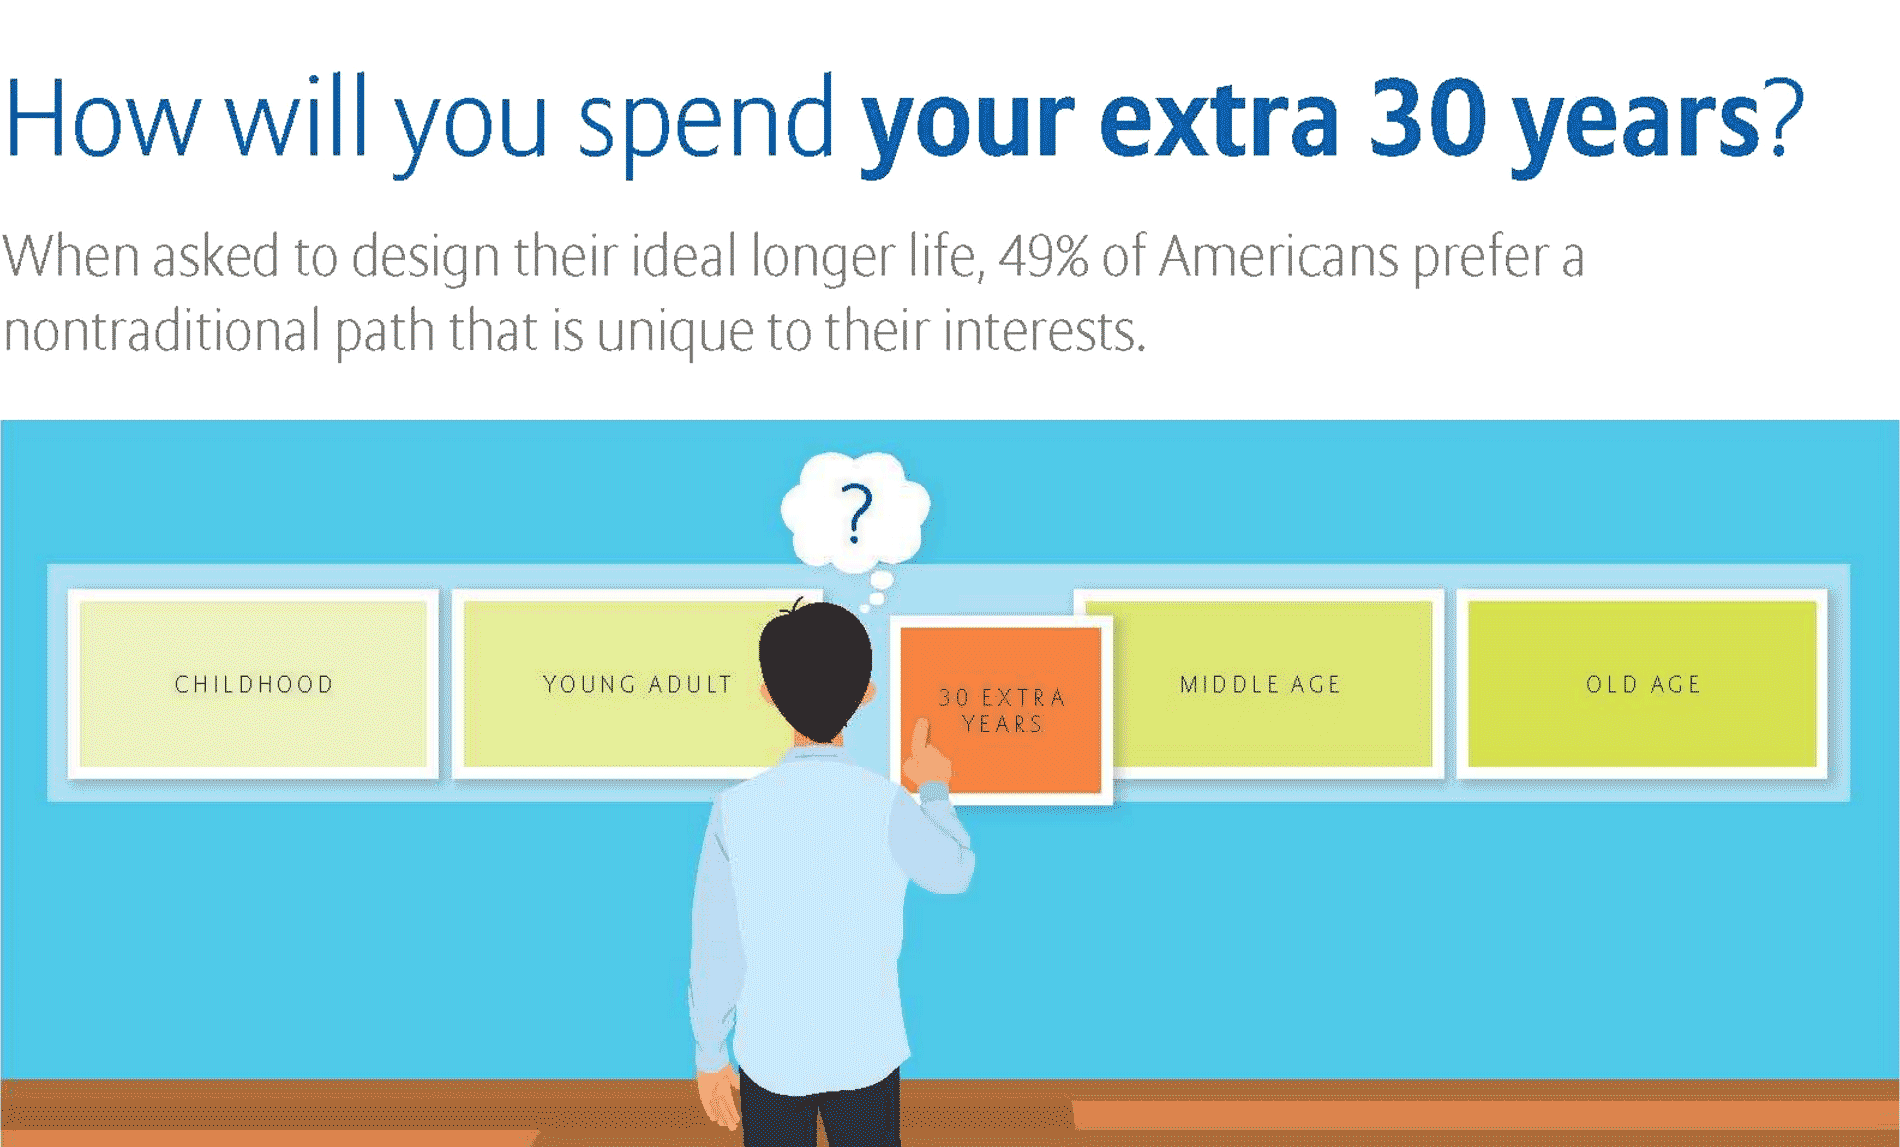 How will you spend your extra 30 years of life?